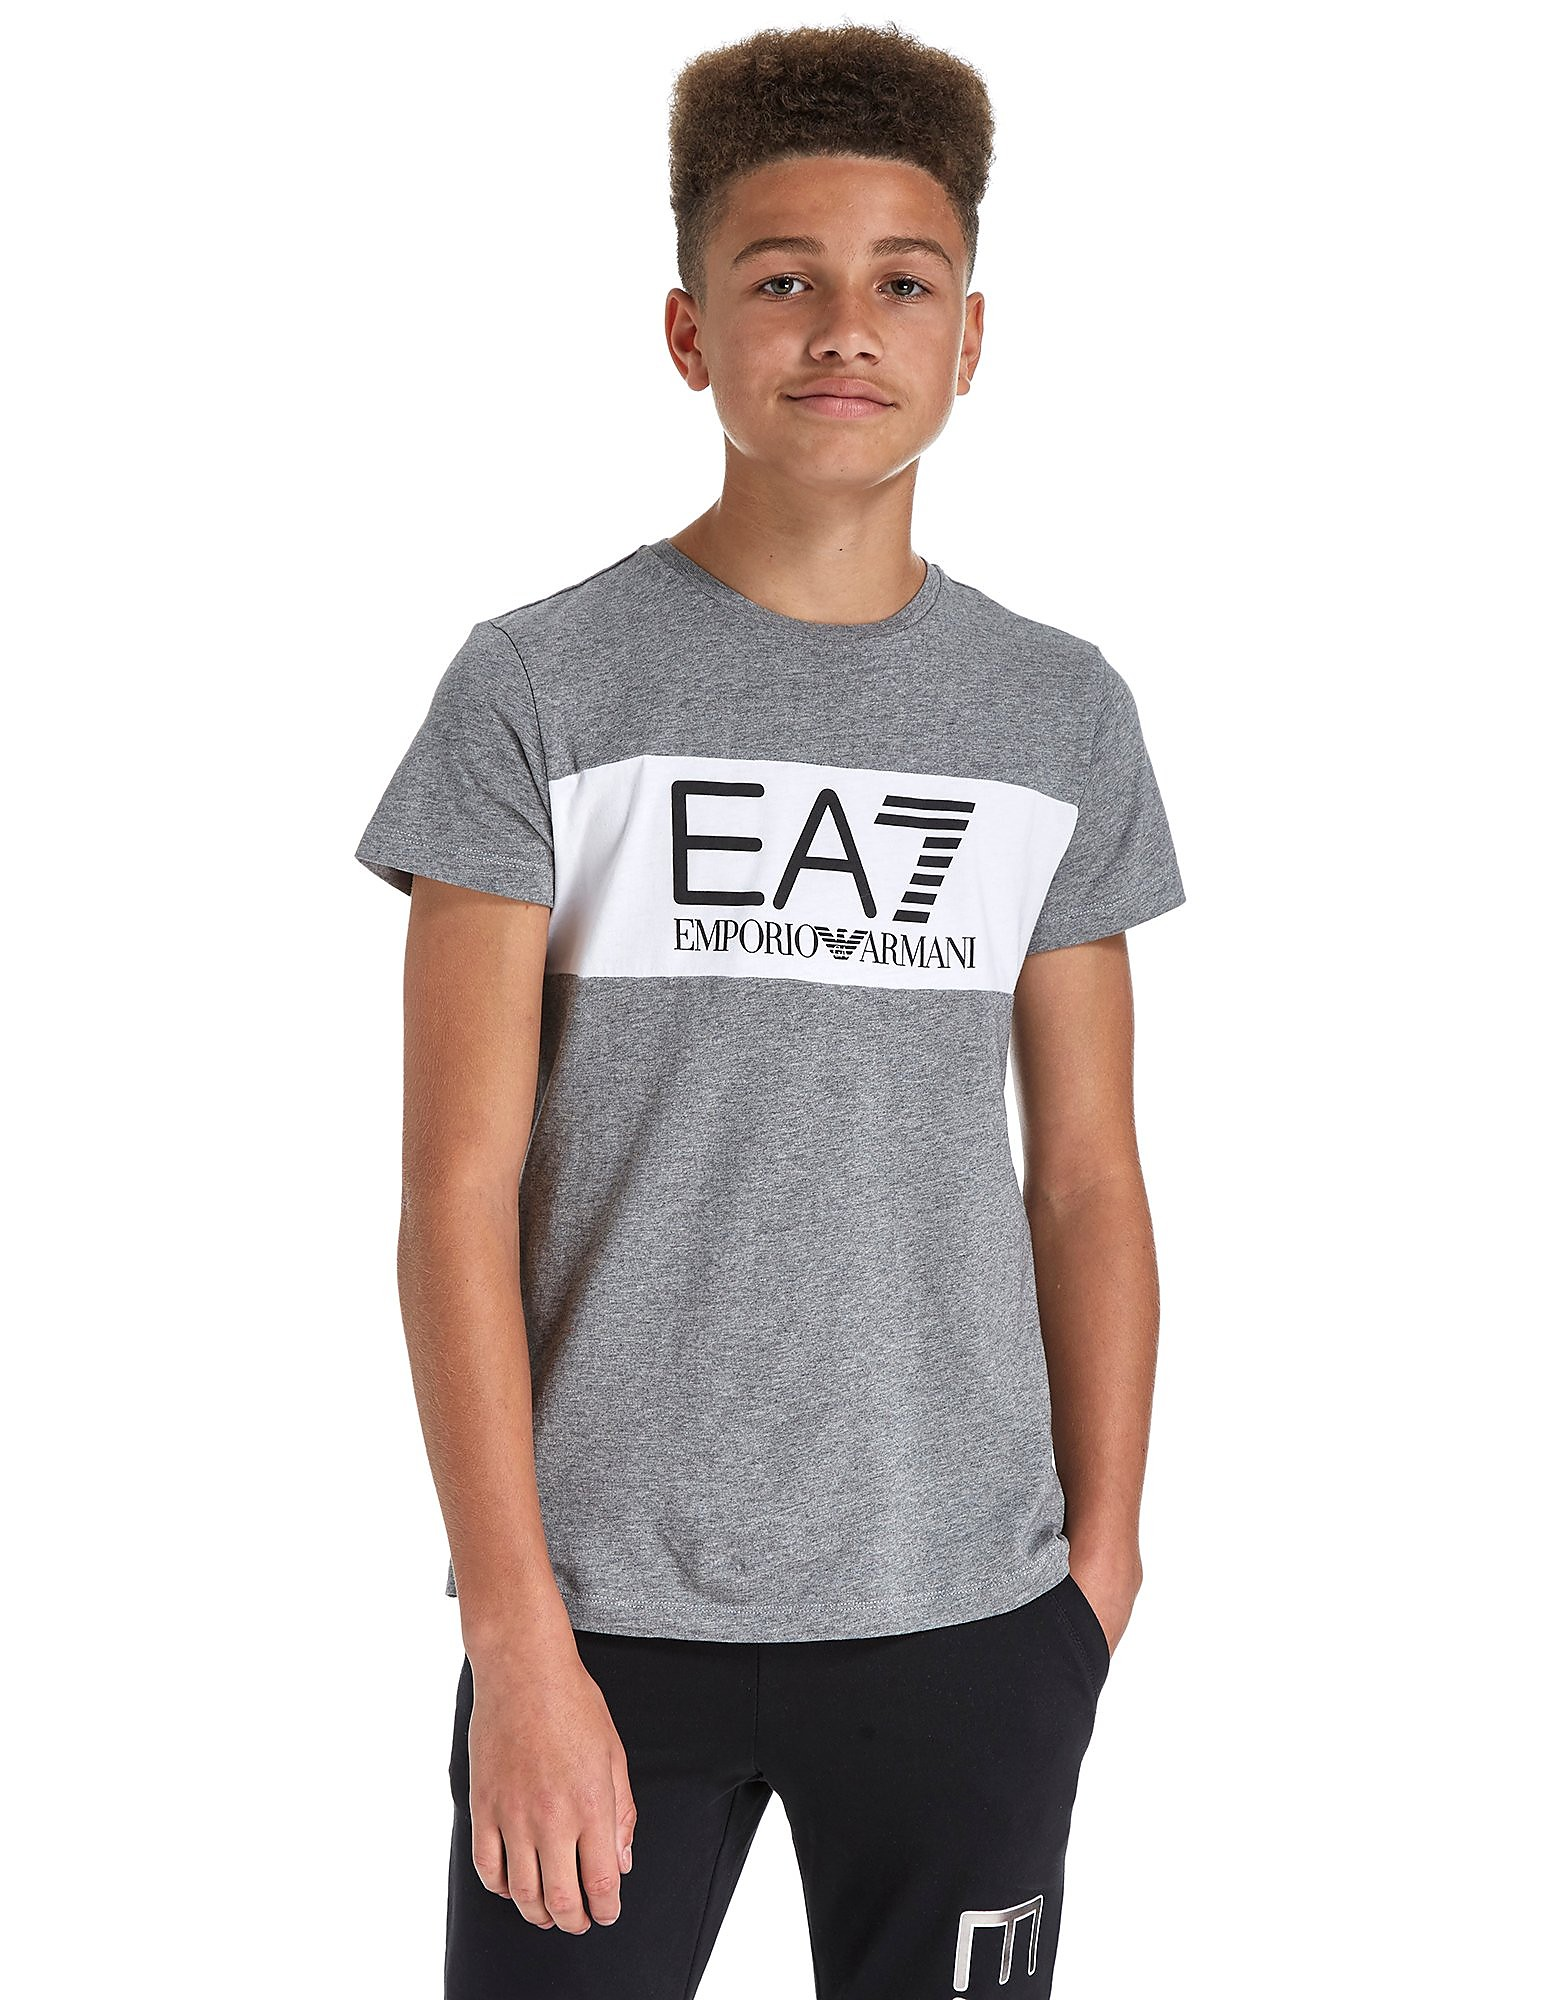 Emporio Armani EA7 Train T-Shirt Junior